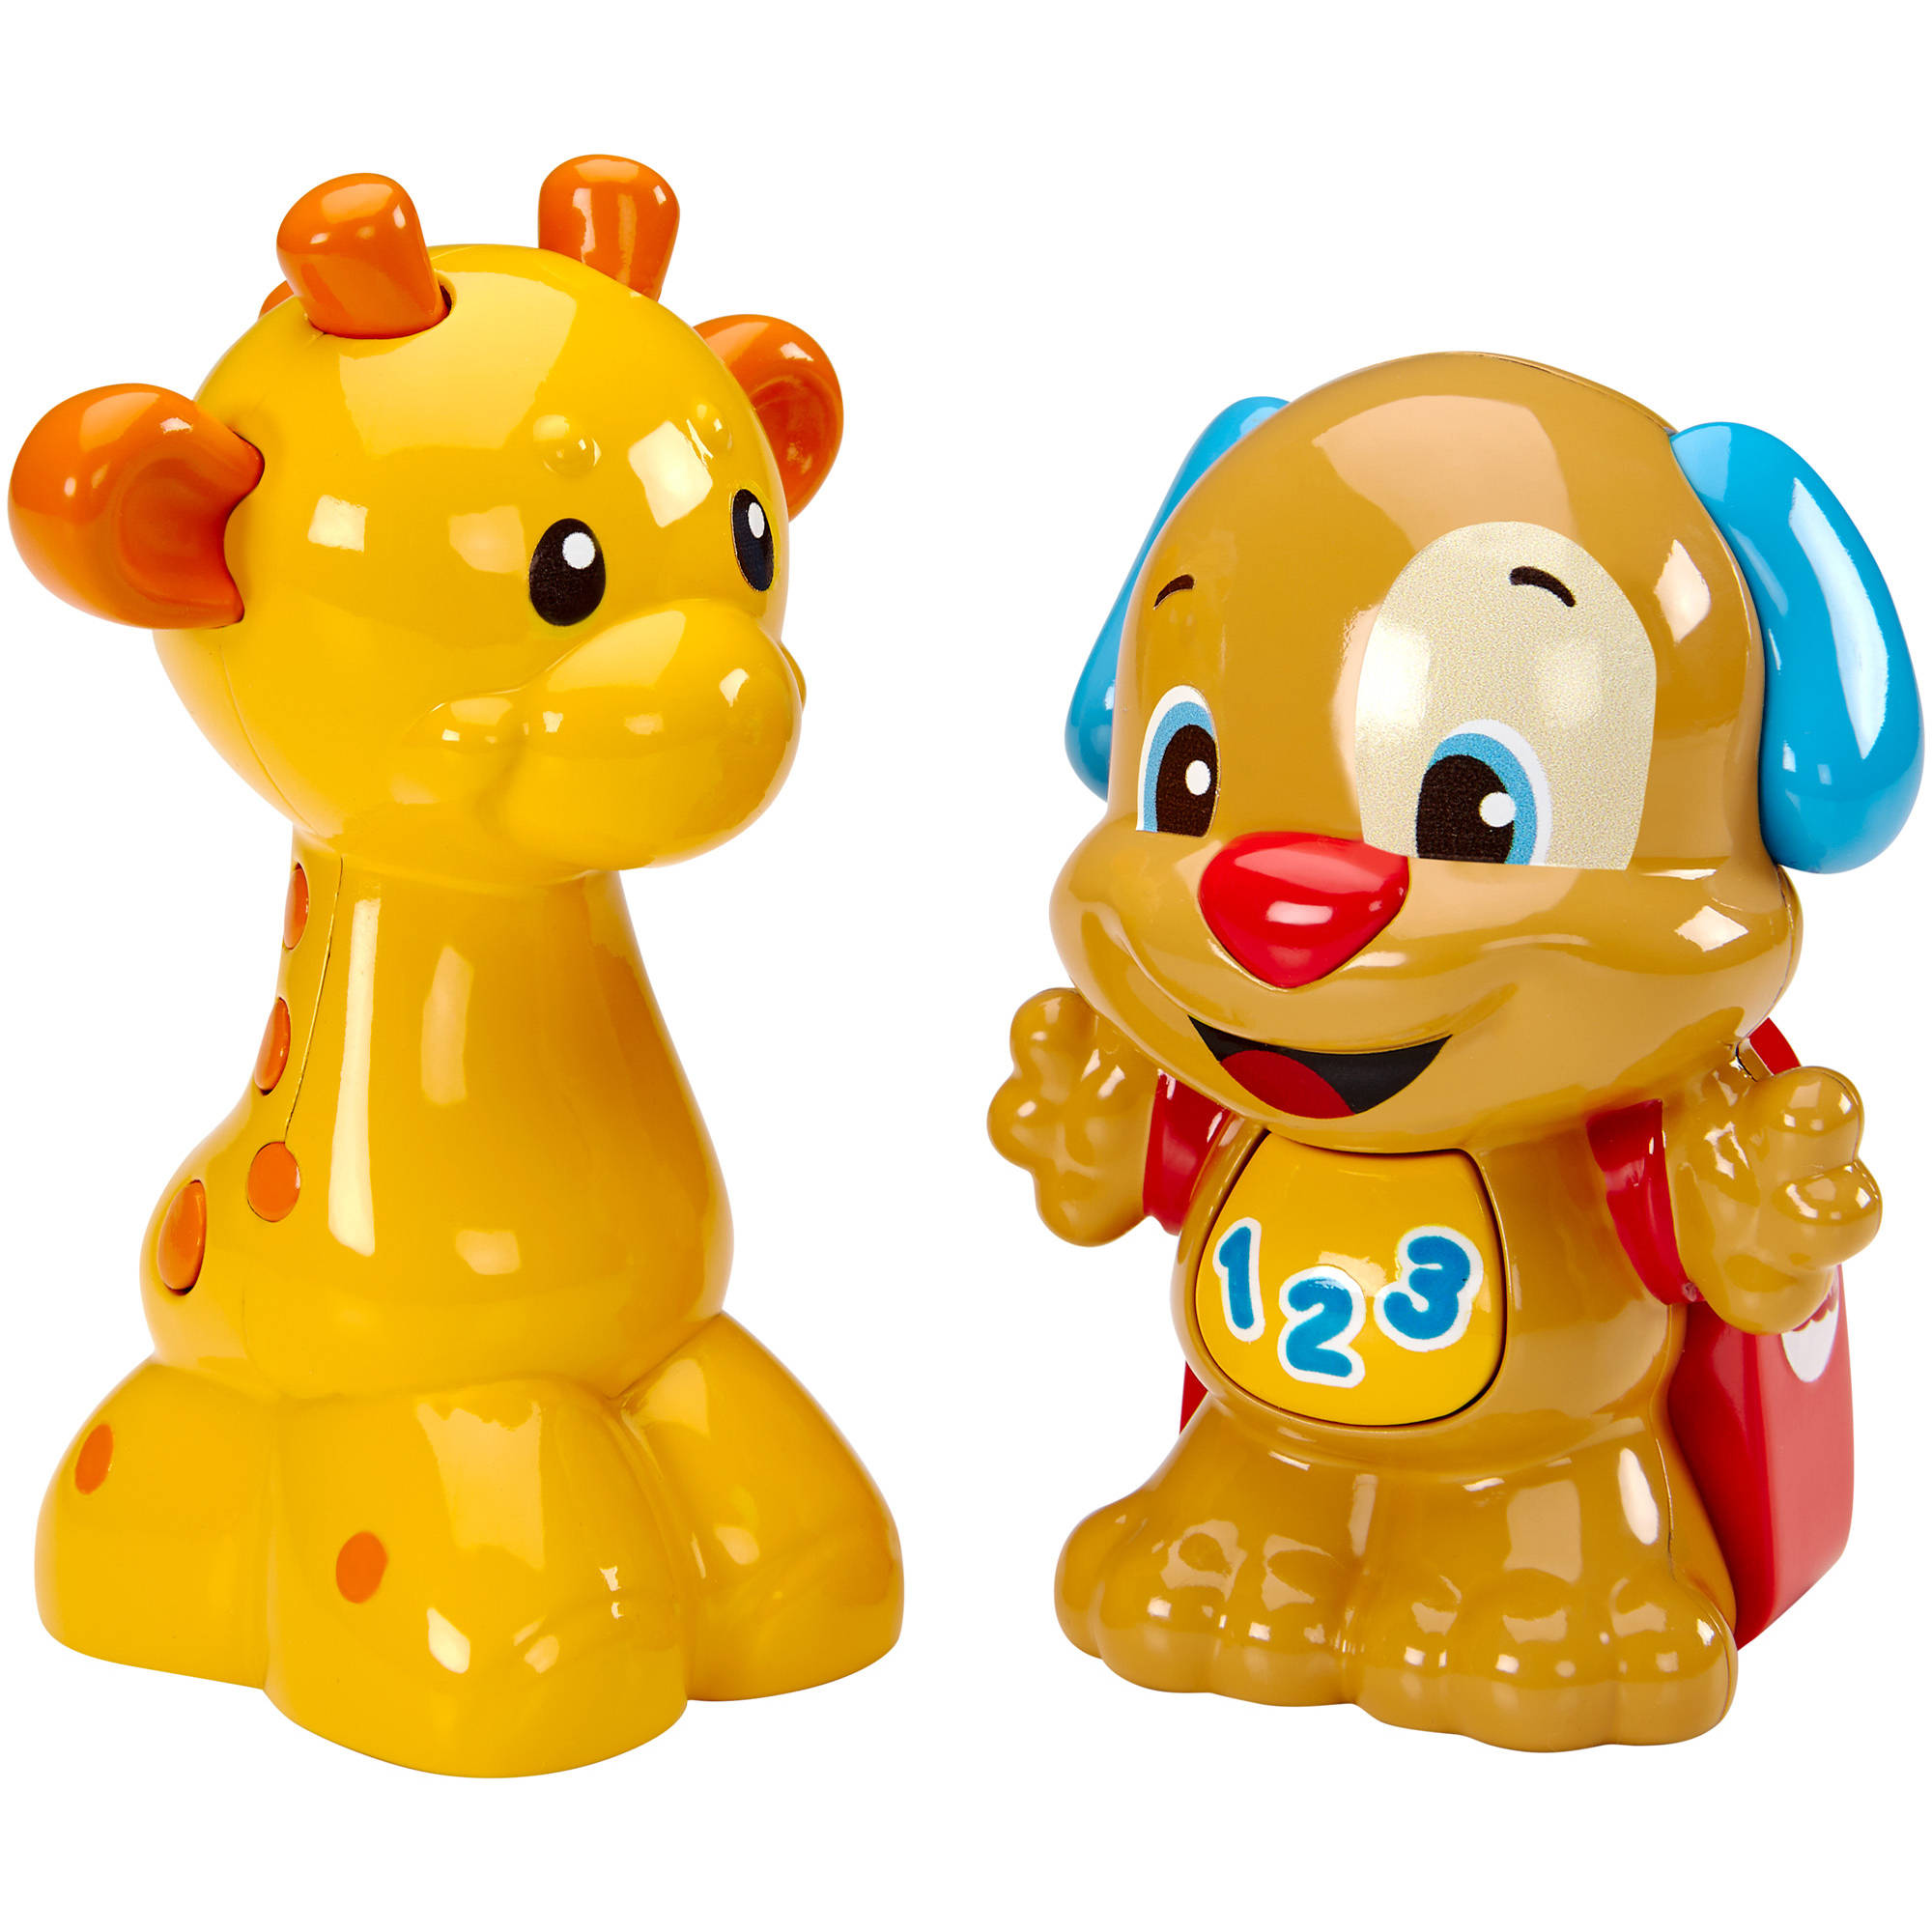 Fisher-Price Laugh and Learn Talk 'n Teach Puppy and Giraffe